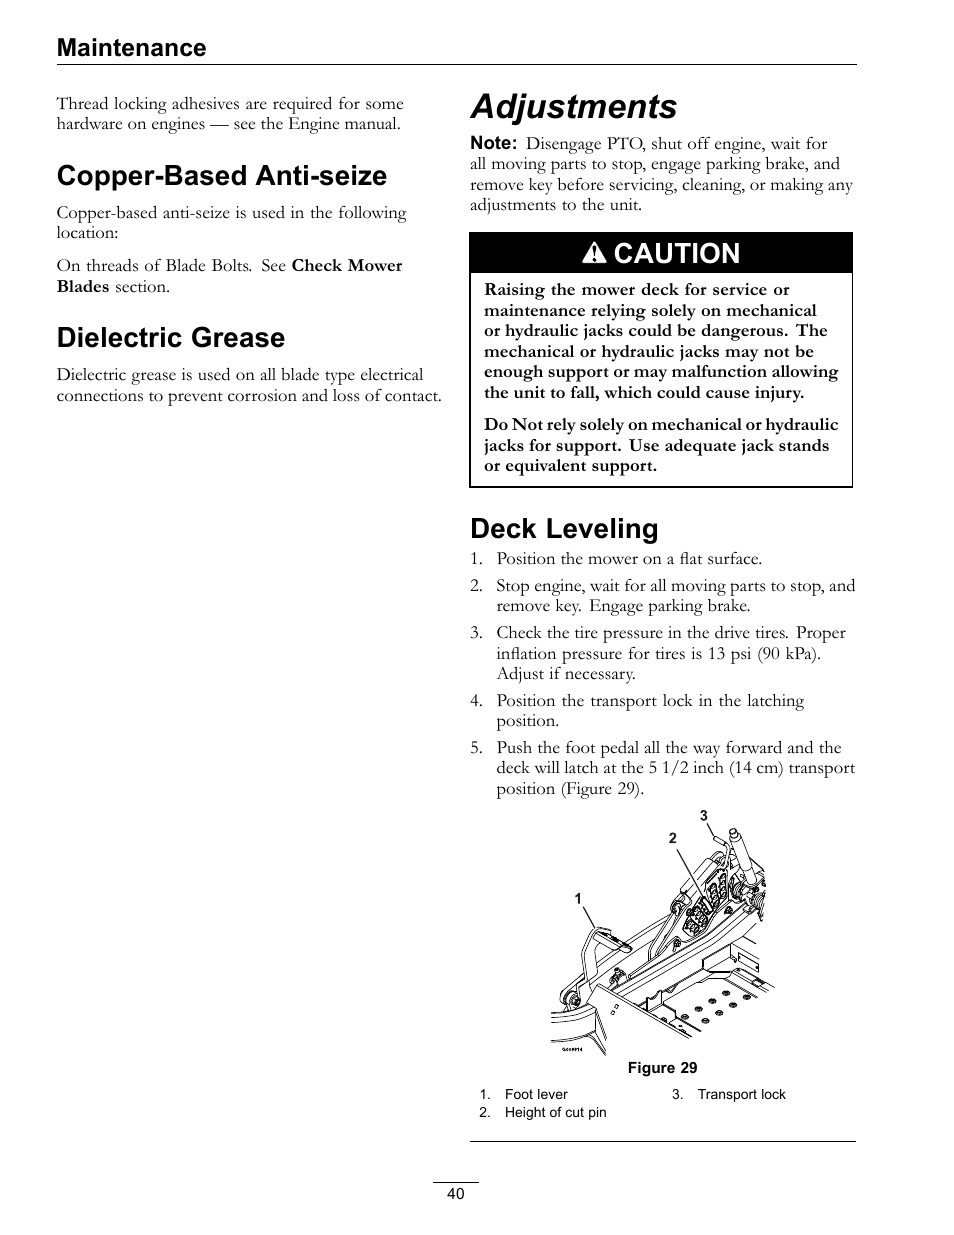 Copper-based anti-seize dielectric grease, Adjustments, Deck leveling |  Copper-